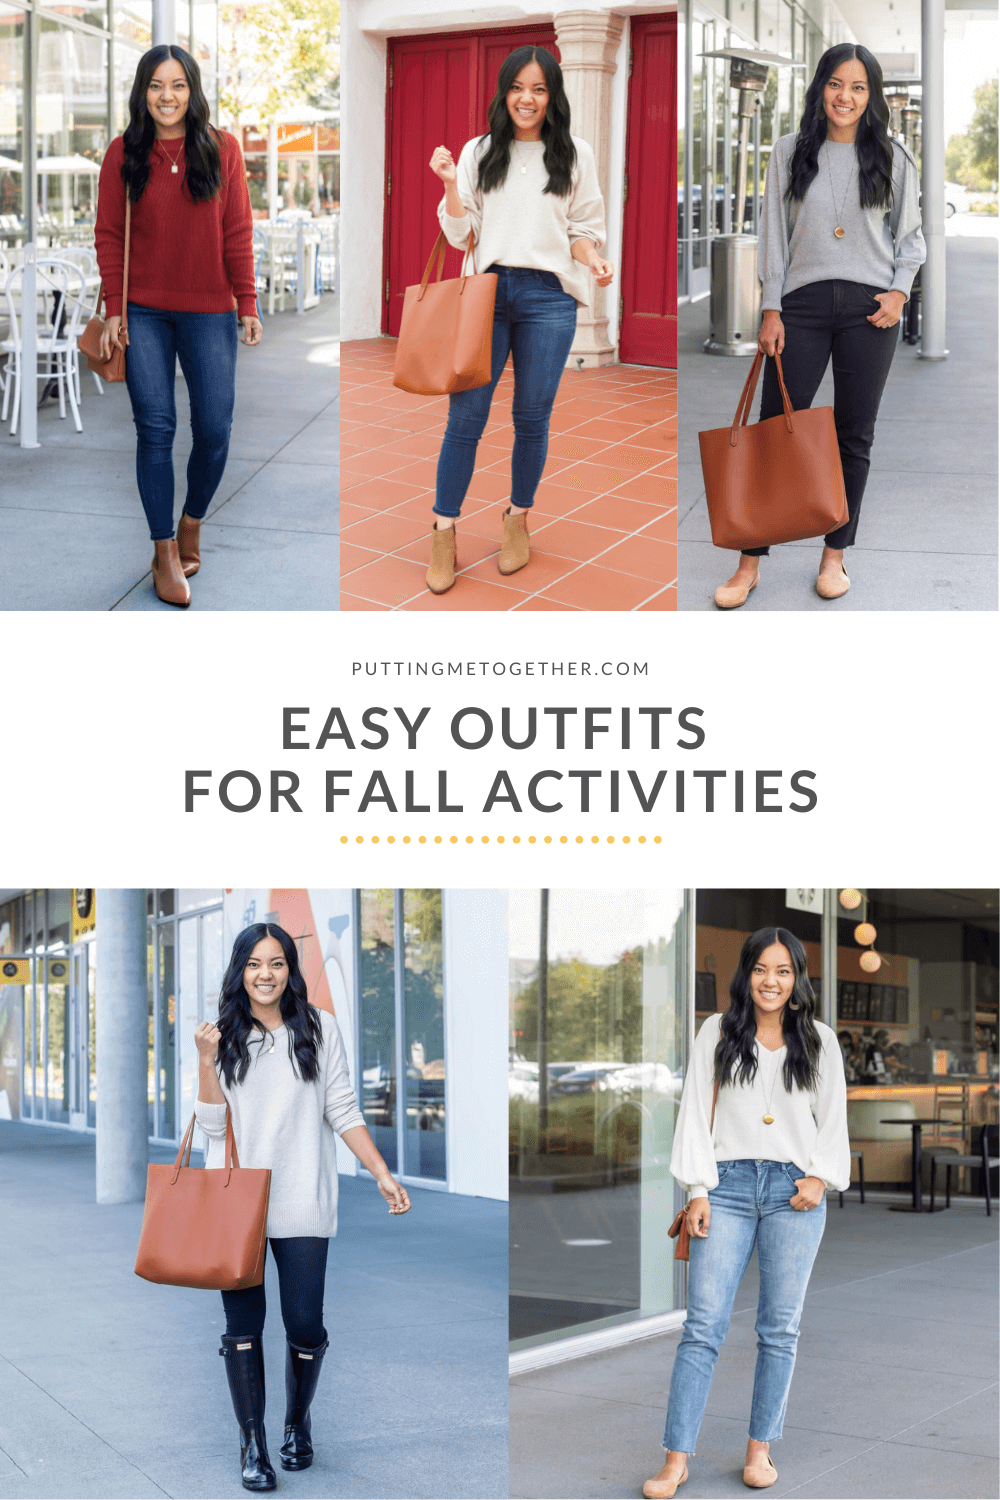 5 Stylish Sweaters for Fall Activities